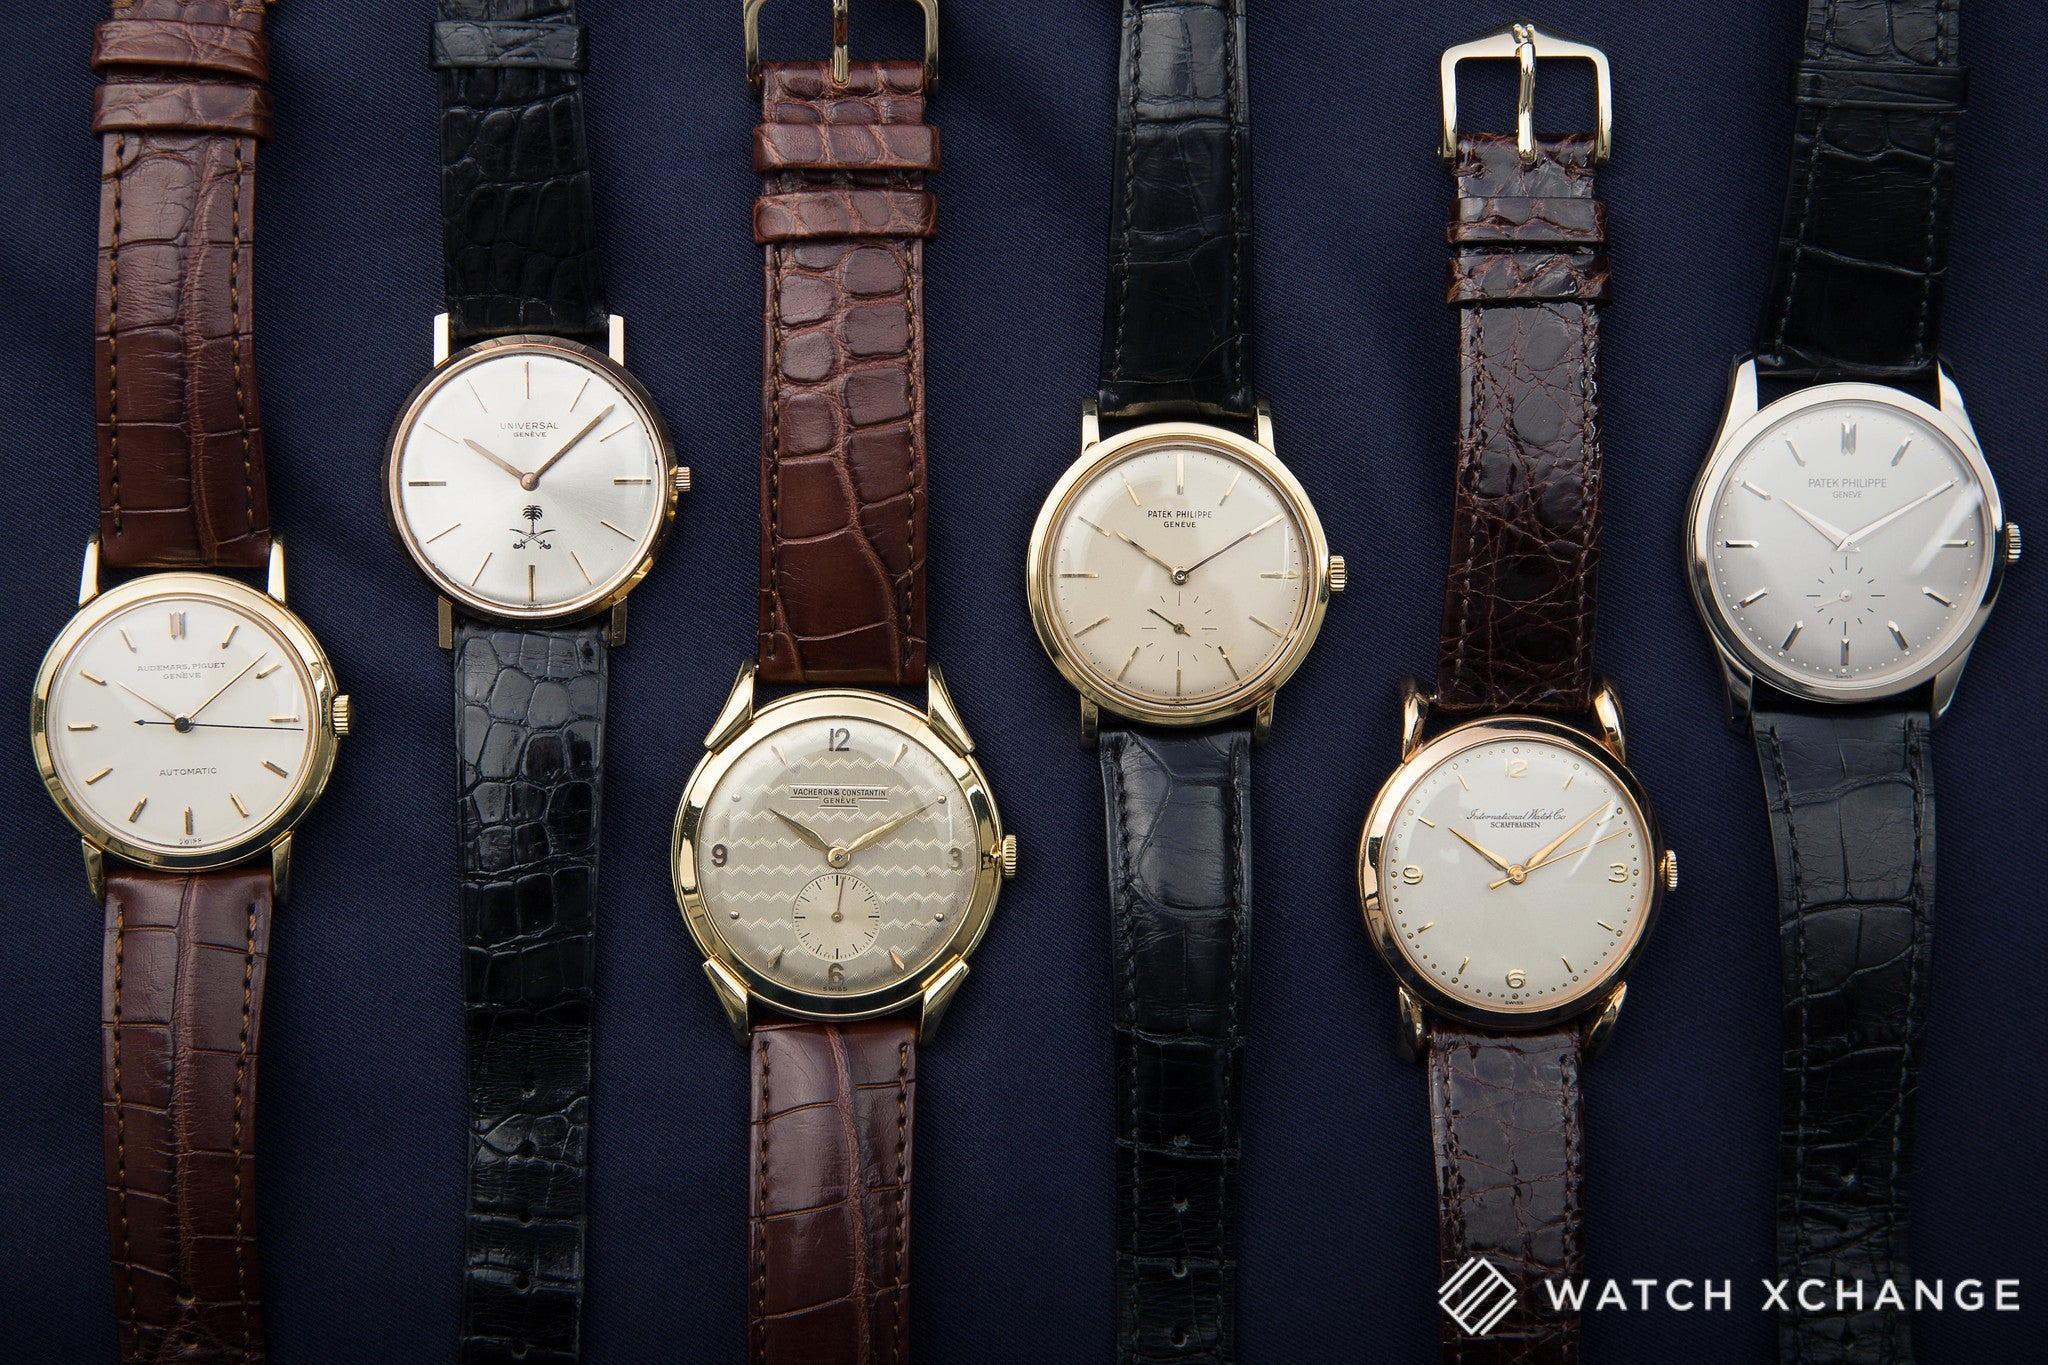 Dress watches dress in style with vintage gold watches watch